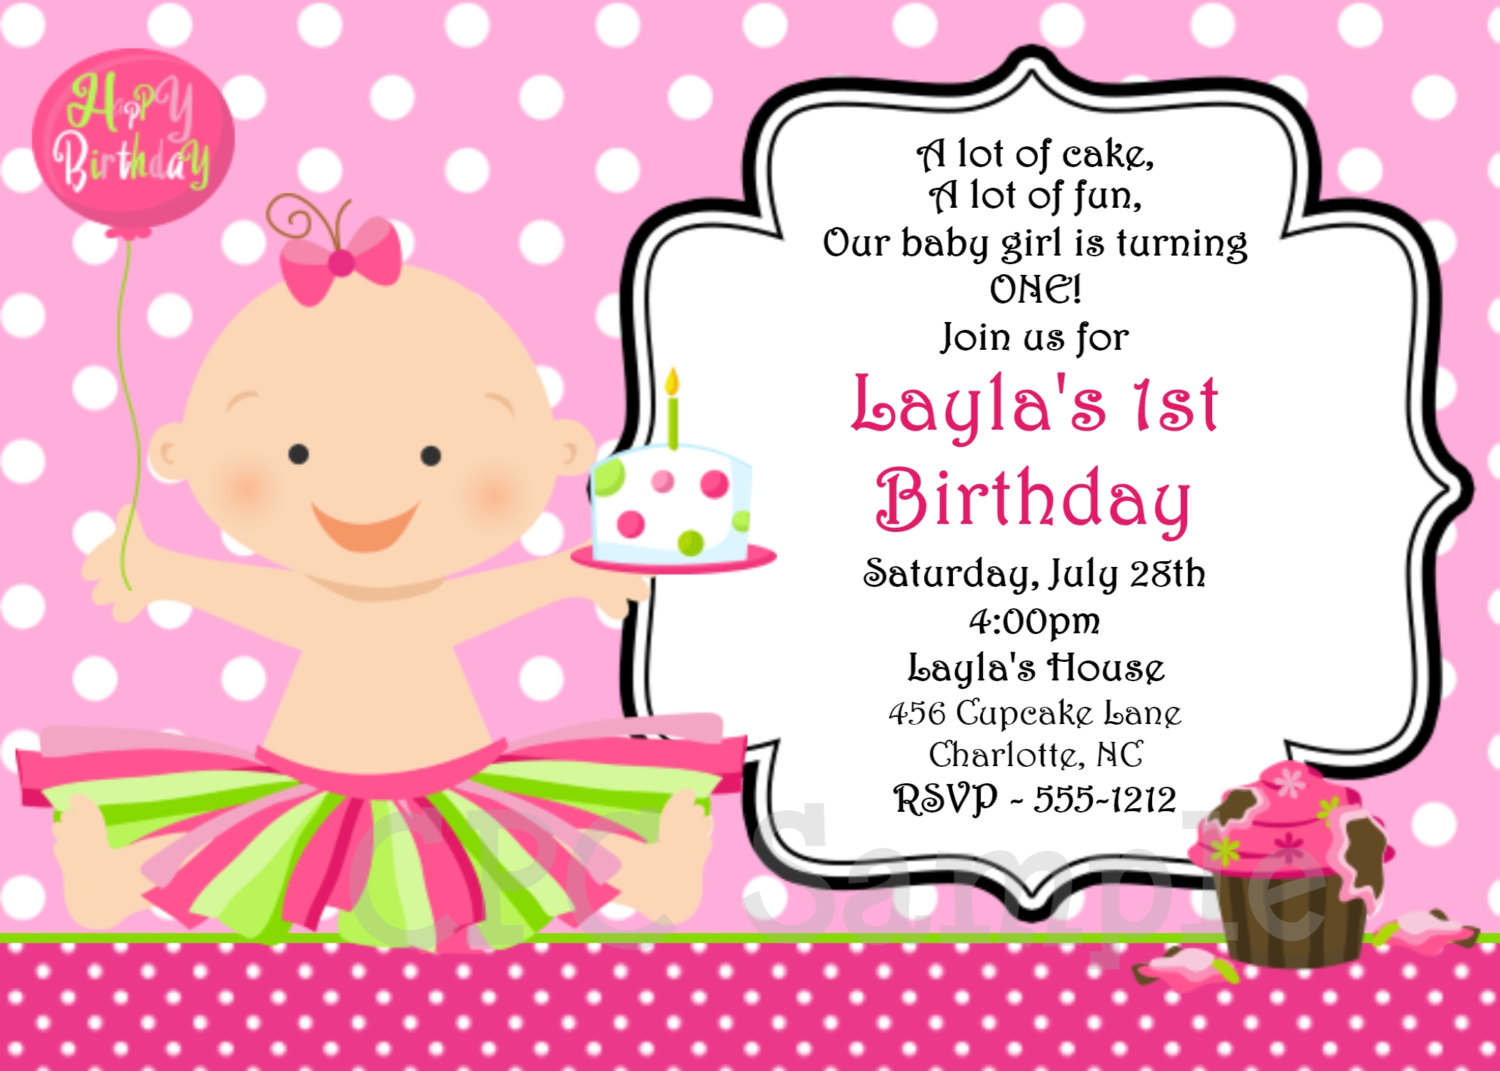 invitation card design for 1st birthday party ; free-birthday-invitation-maker-Related-posts-of-1st-Birthday-Invitations-Card-Design-Free-girls-balloons-cupcakes-design-pink-colors